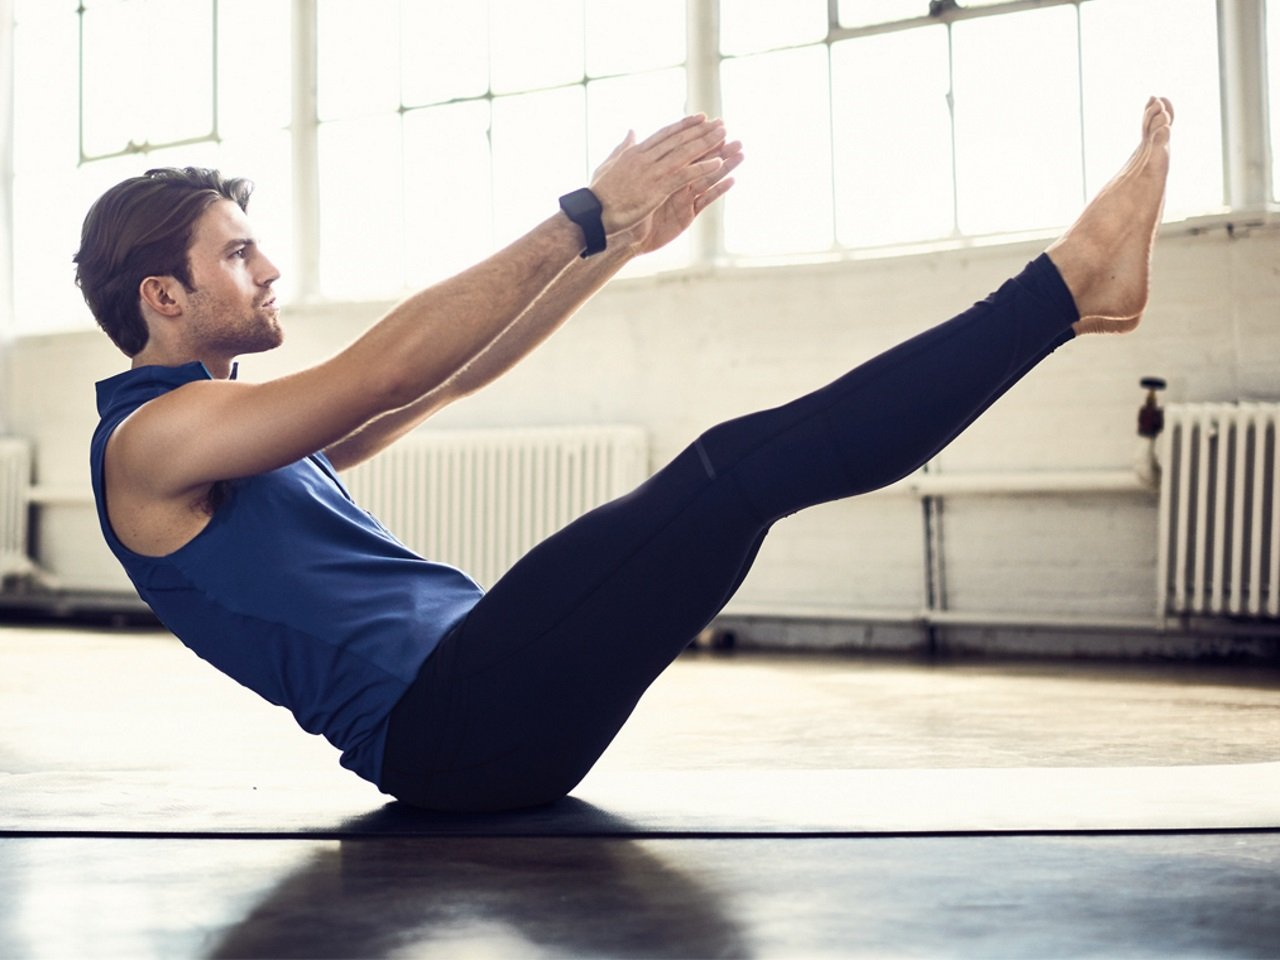 Why Pilates Is One Of The Best Anti-Aging Exercises